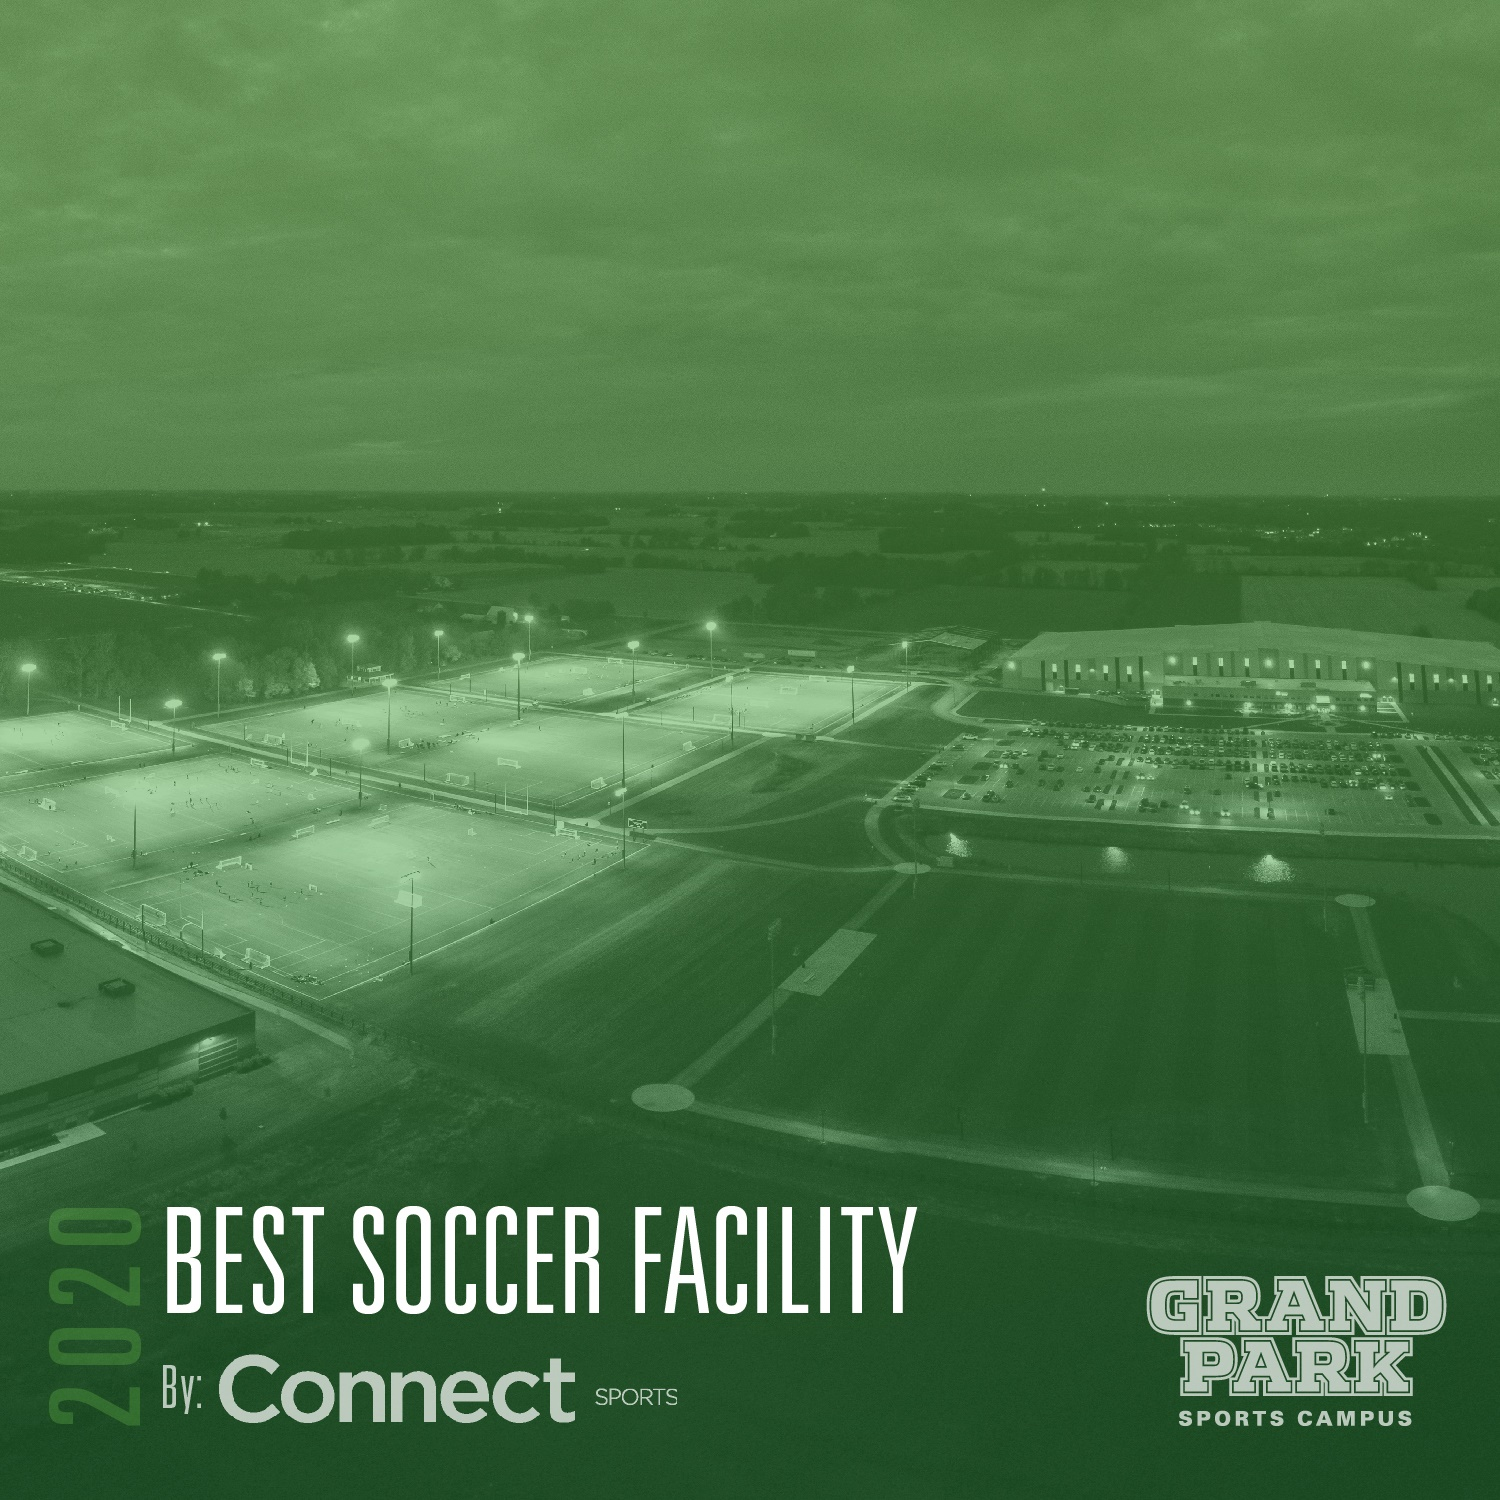 """Photo for: NEWS RELEASE: Grand Park Recognized as """"Best Soccer Facility"""" in 2020 by Connect Sports"""